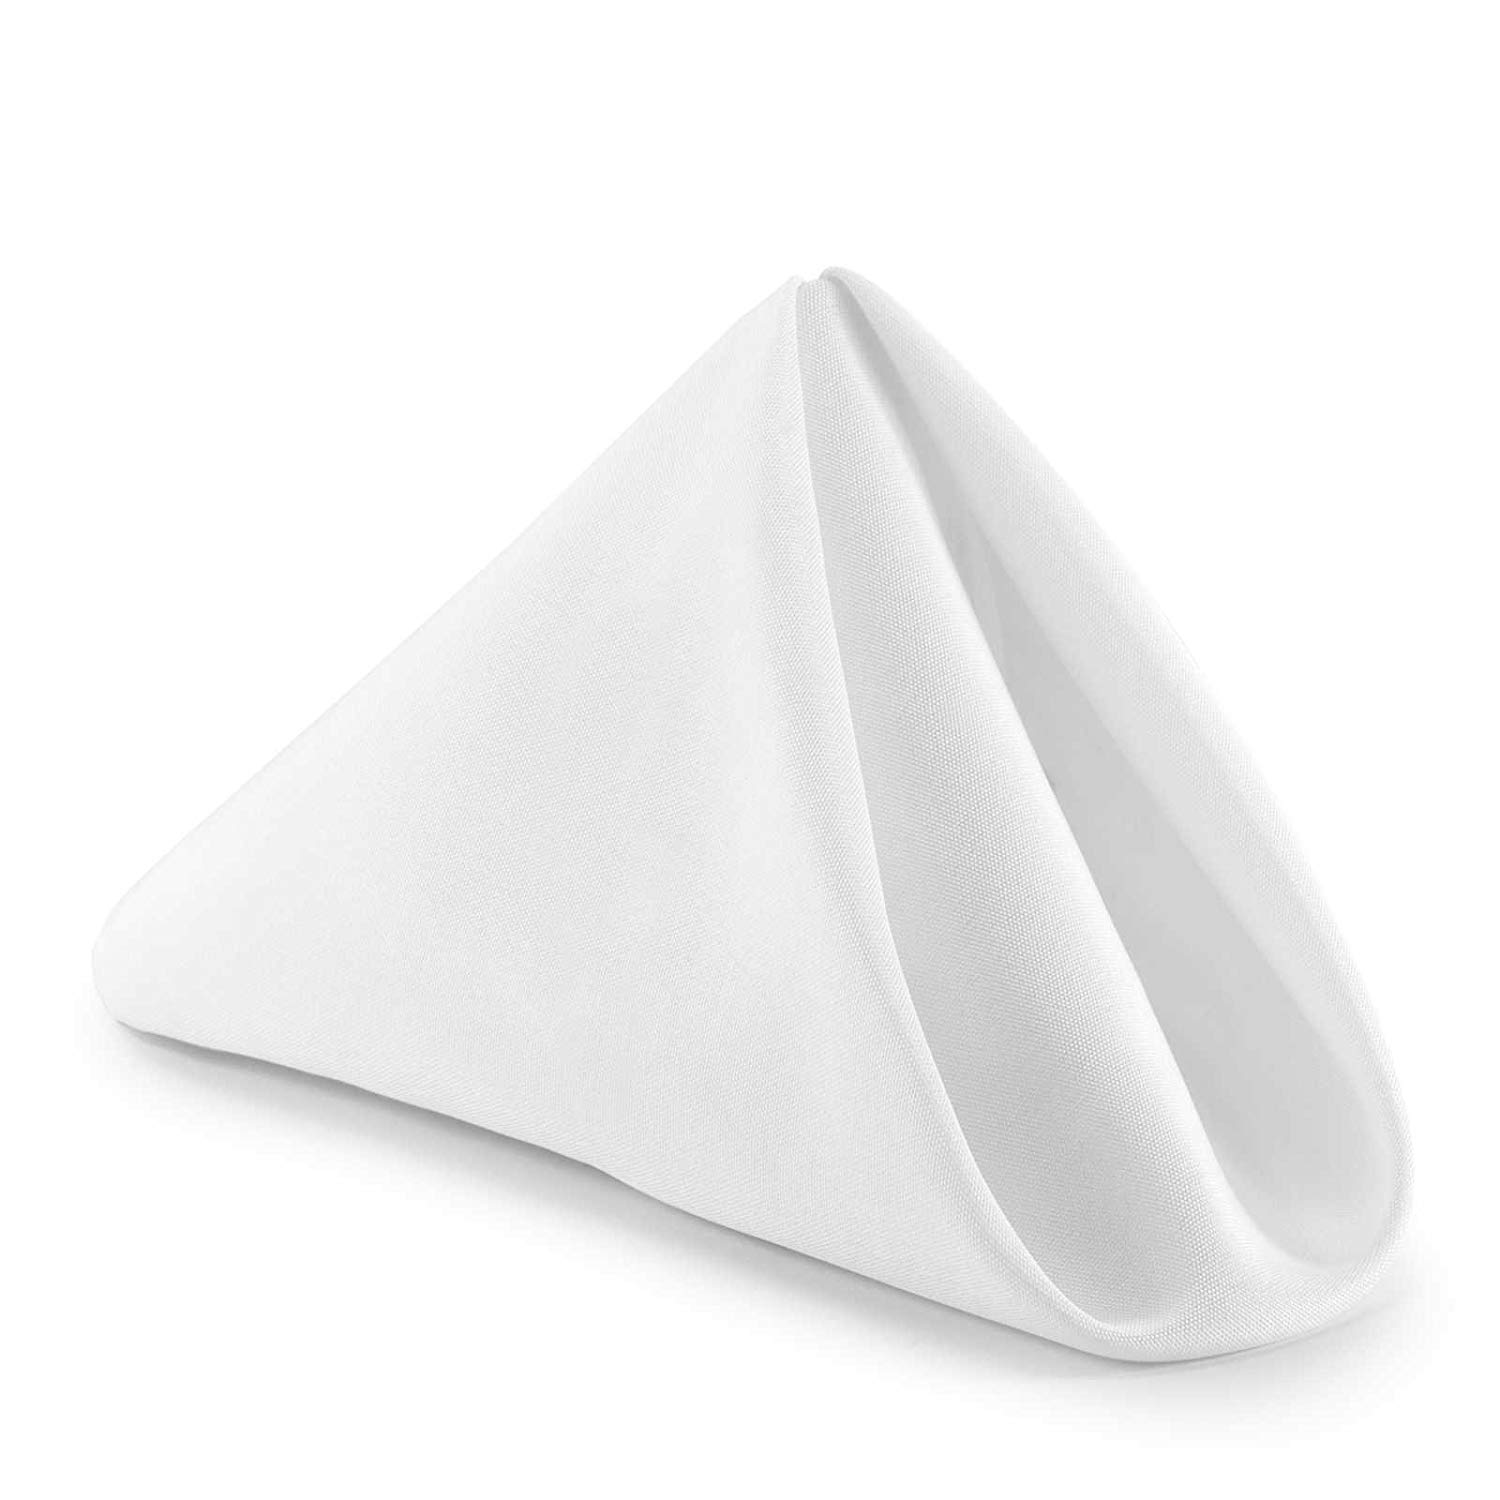 10 X 10 Inches Plain Printed Linen Kitchen Napkin 100/% Cotton Pack of 10 Dinner Napkins with Hemmed Edges,Cloth Napkins for Wedding,Parties White Solid